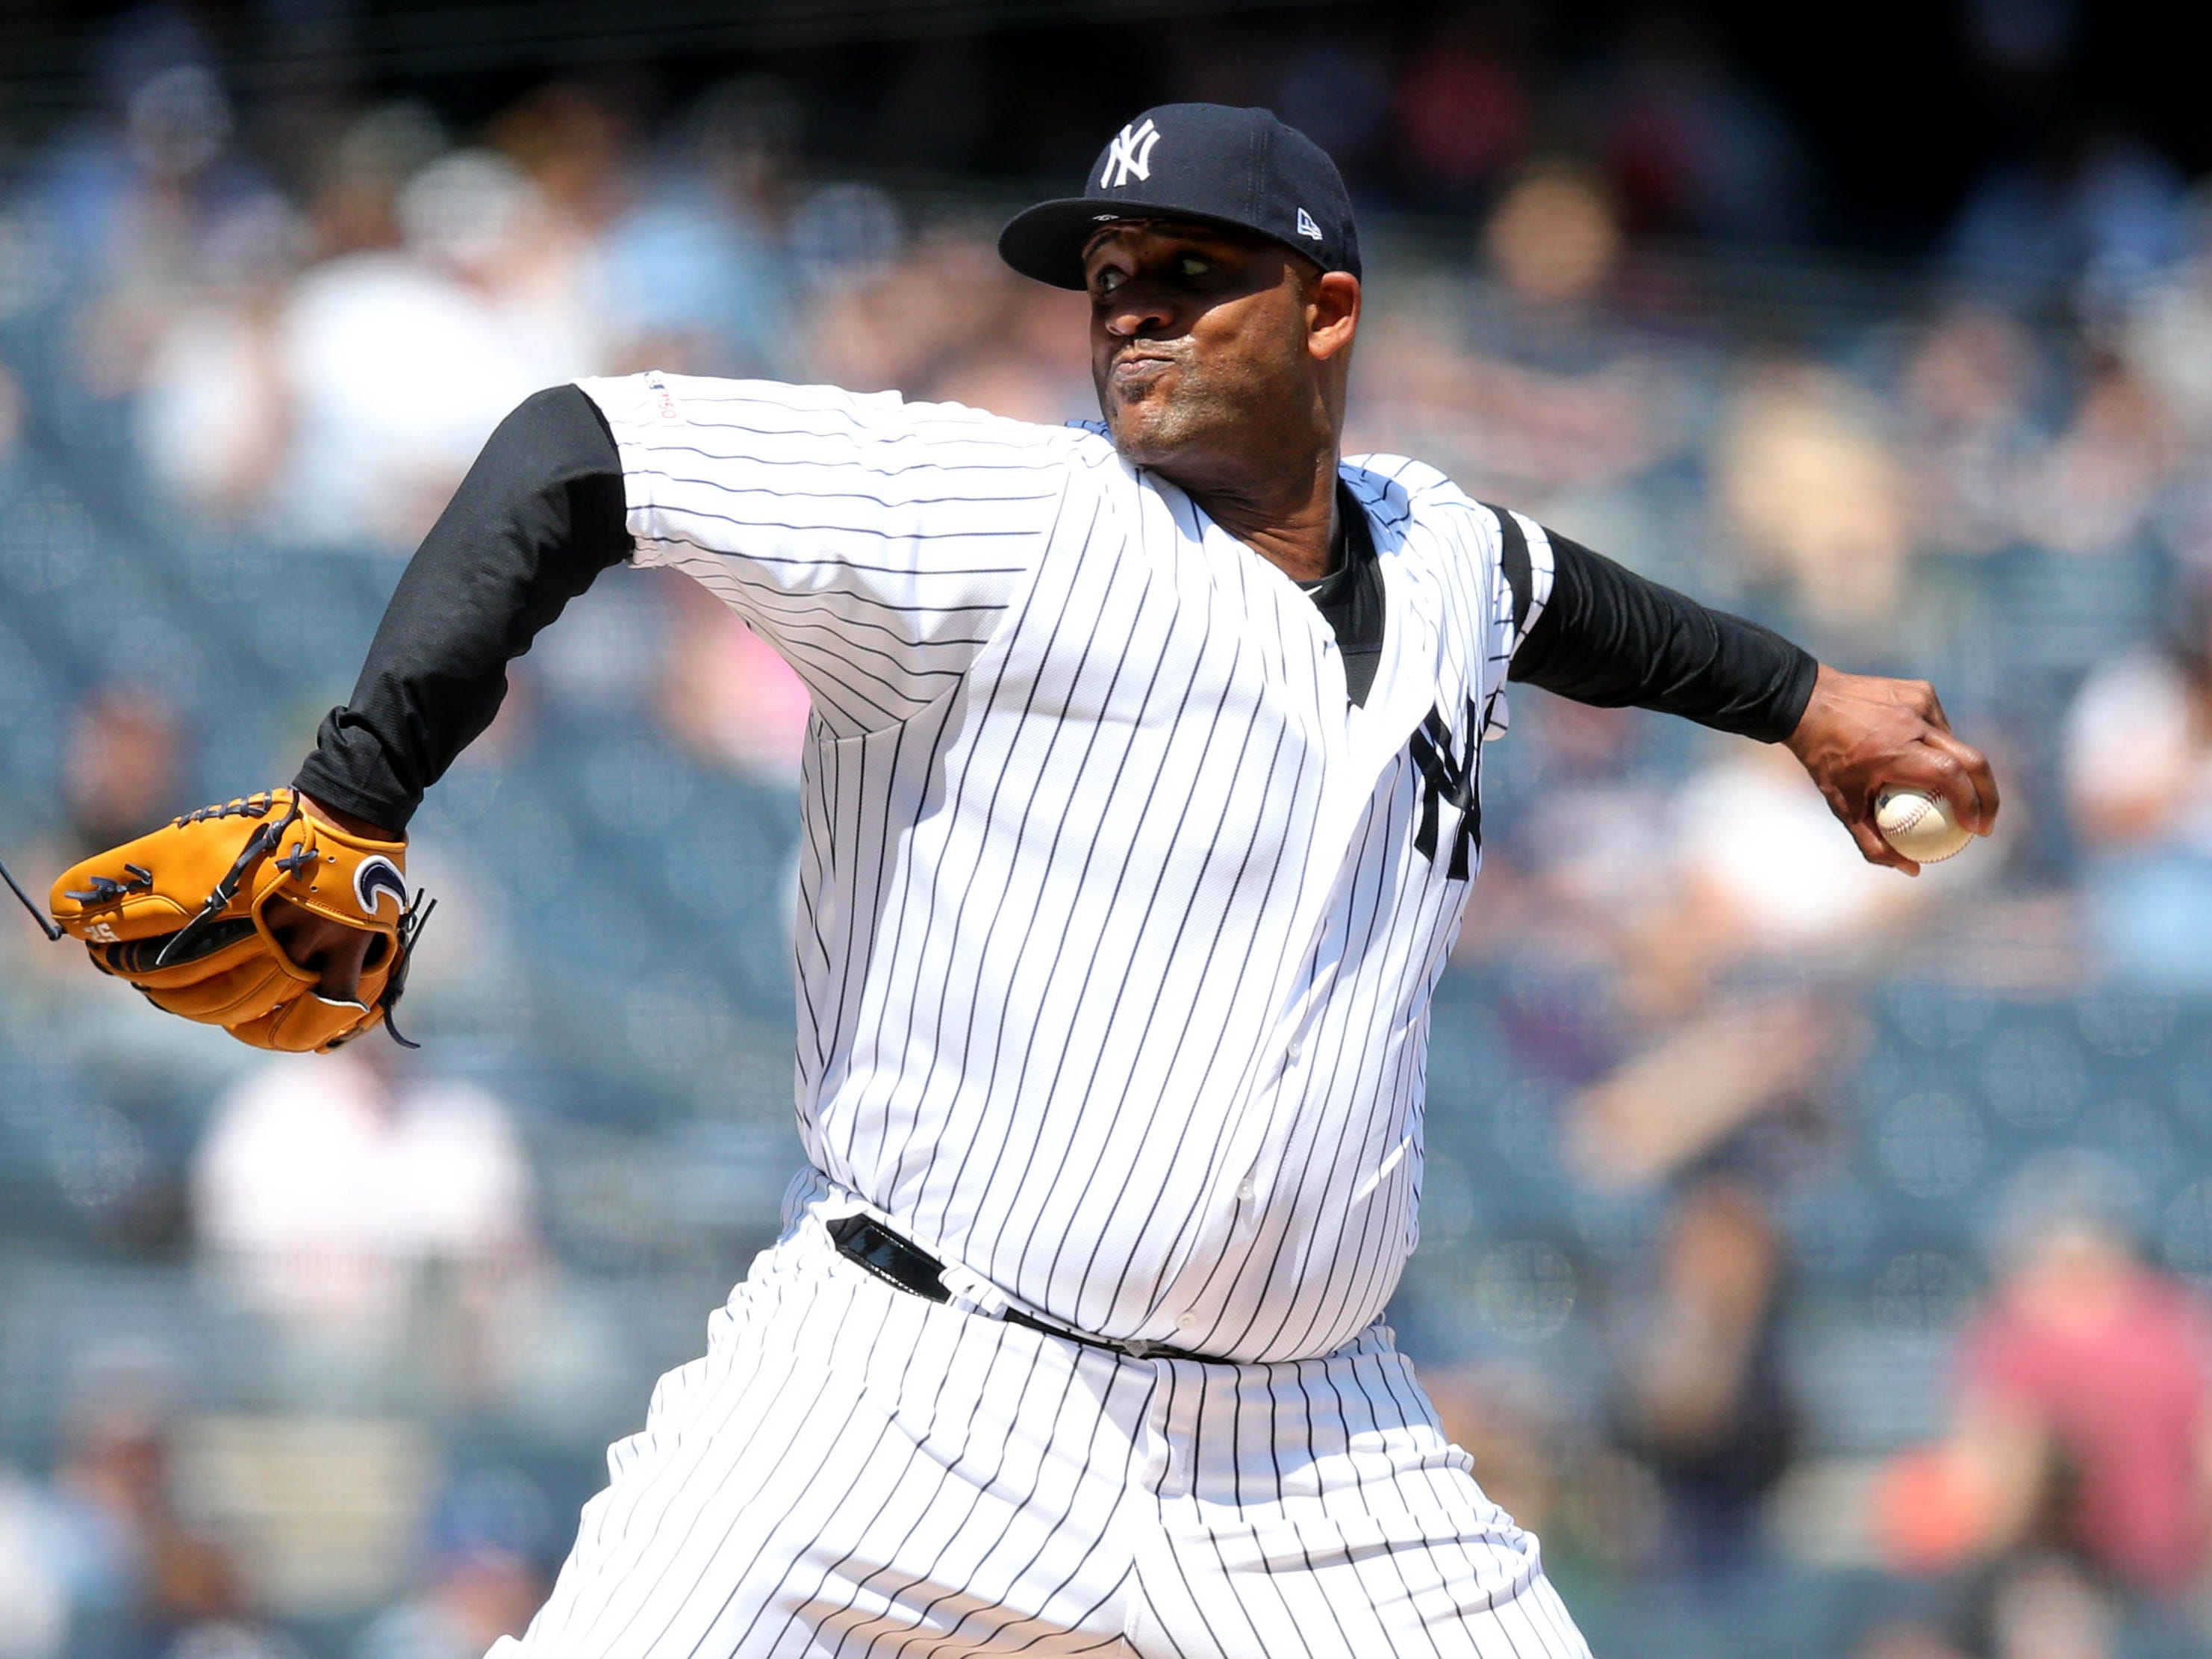 Apr 13, 2019; Bronx, NY, USA; New York Yankees starting pitcher CC Sabathia (52) pitches against the Chicago White Sox during the second inning at Yankee Stadium.